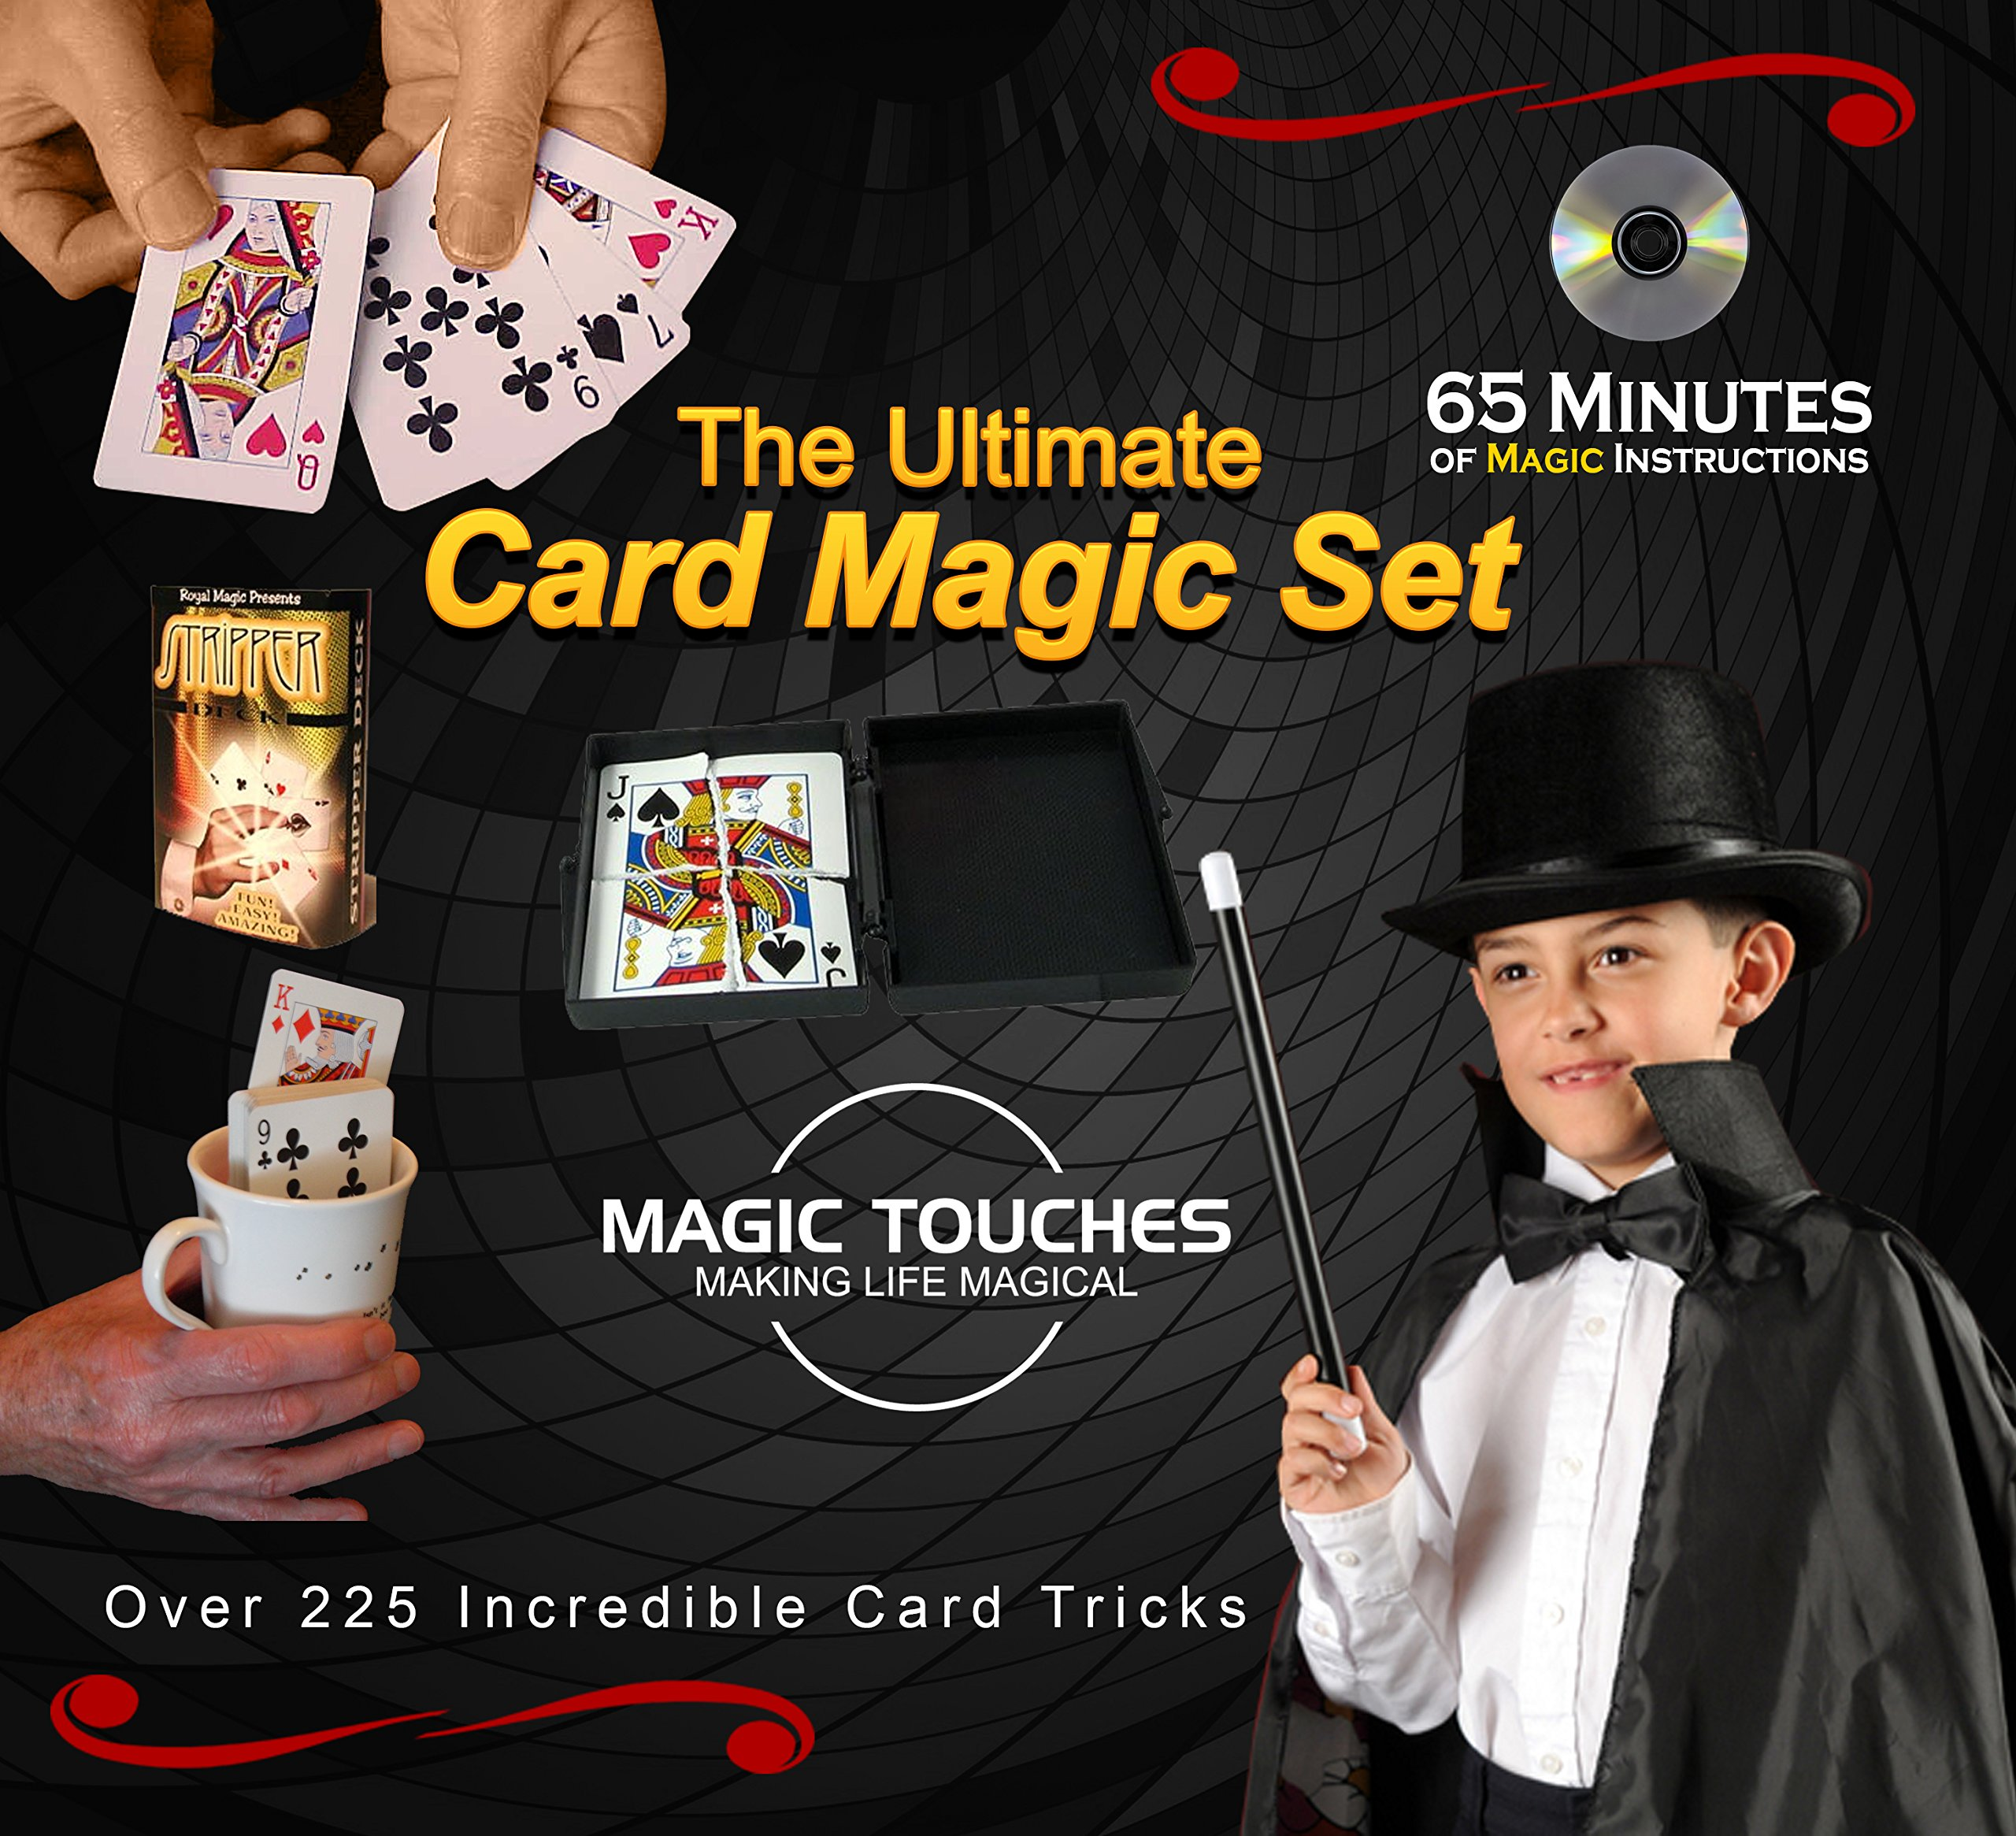 Magic Card Tricks Set - The Ultimate Card Magic Set for Kids and Grown-ups Alike - Over 300 Incredible Card Tricks Revealed in This Amazing Magic Set - Made in USA and Includes 65 Minute DVD Tutorial by Magic Touches Making Life Magical